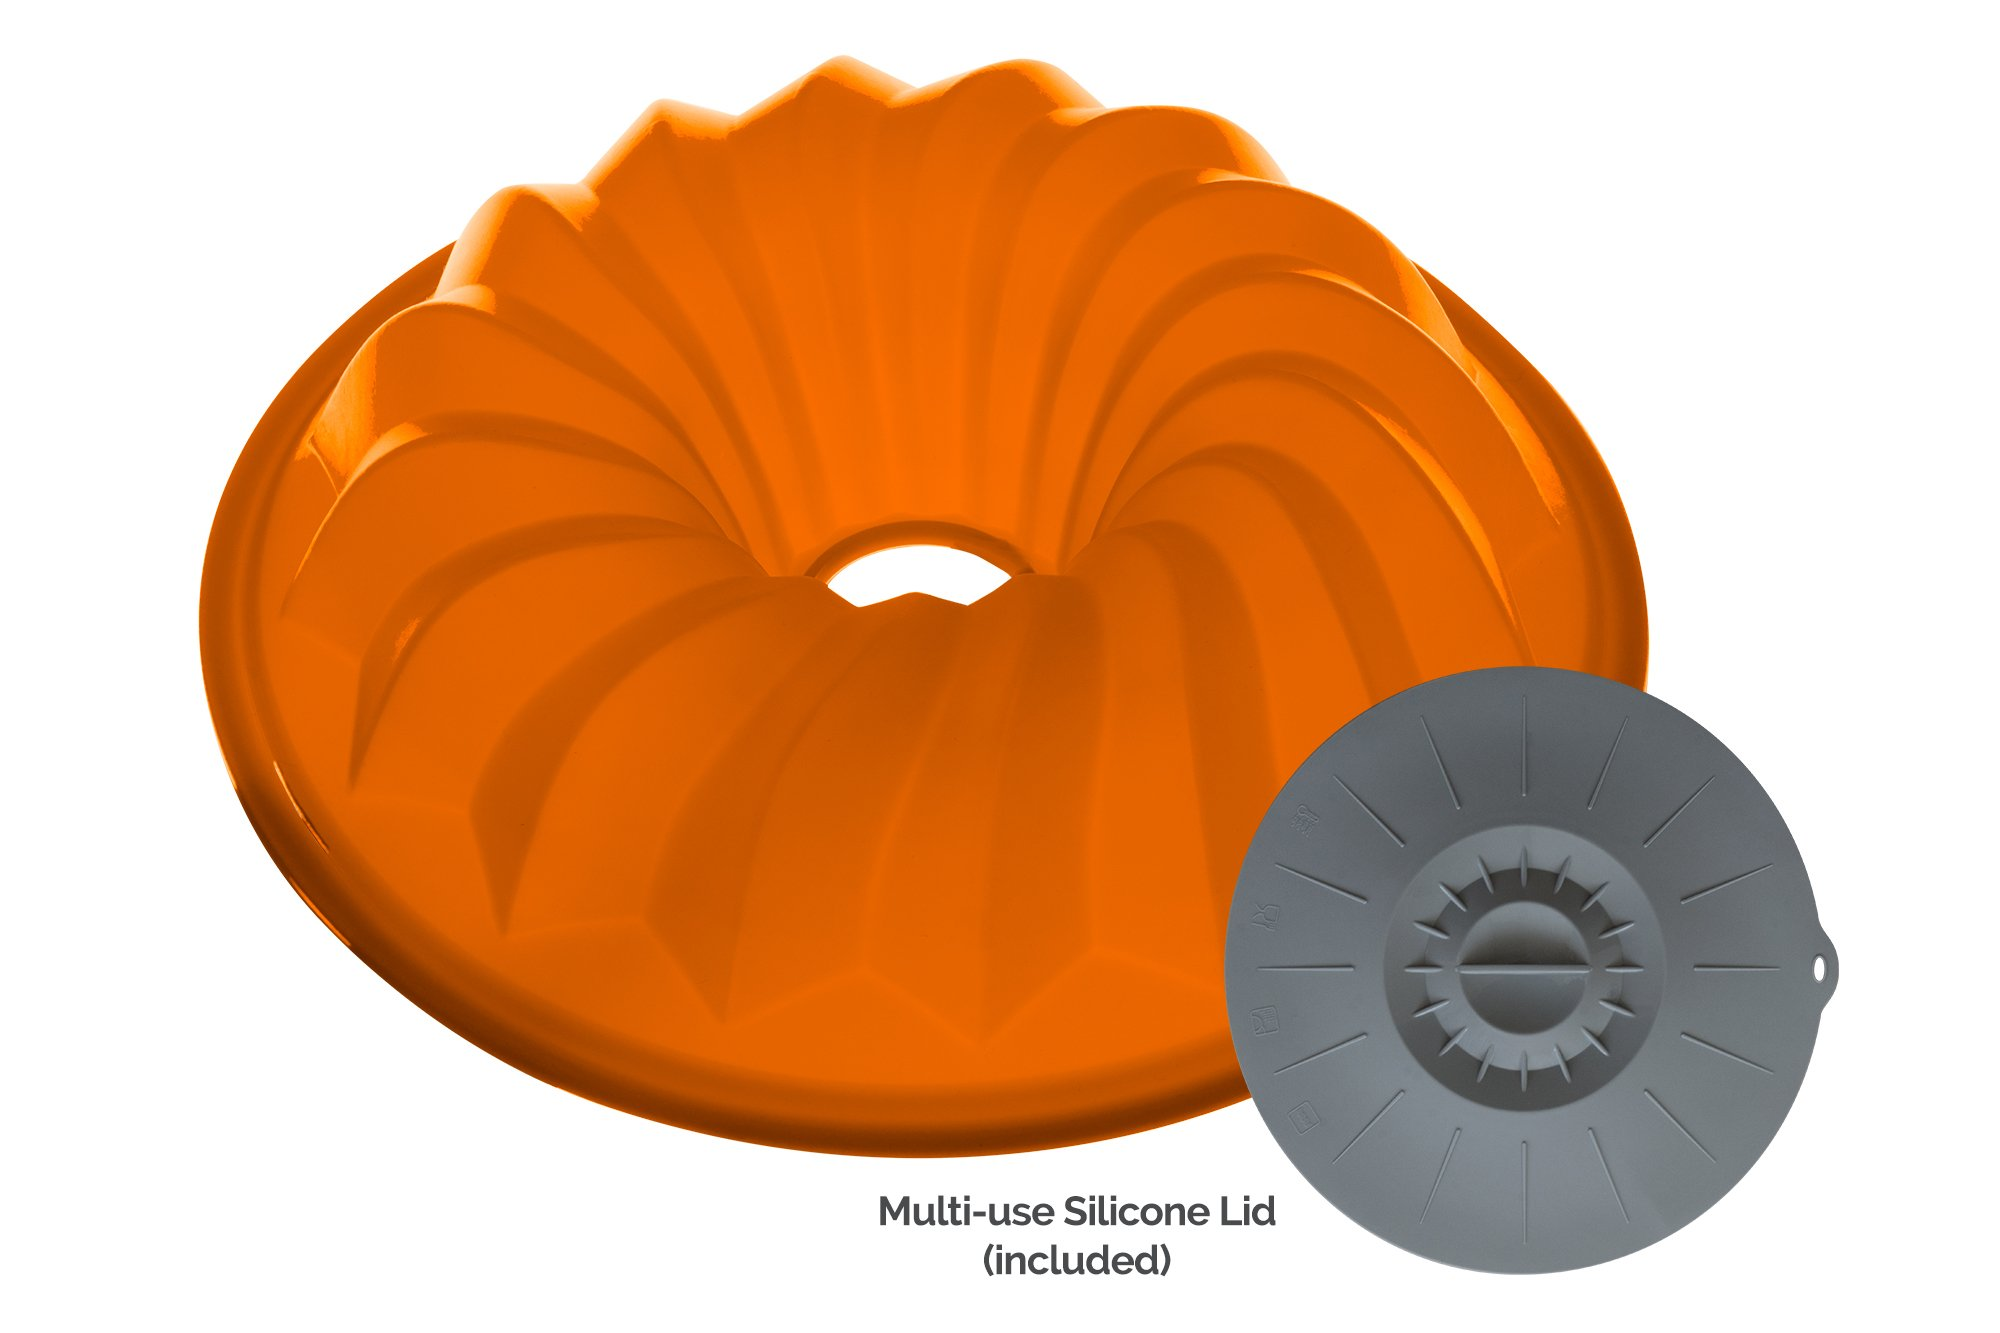 The Clever Cuisine Silicone Bundt Pan Spiral Gelatin (Jell-O) Cake and Flan Mold, Perfect Thickness to Keep Consistent Form 10.5 D X 2.5 H, and Lid